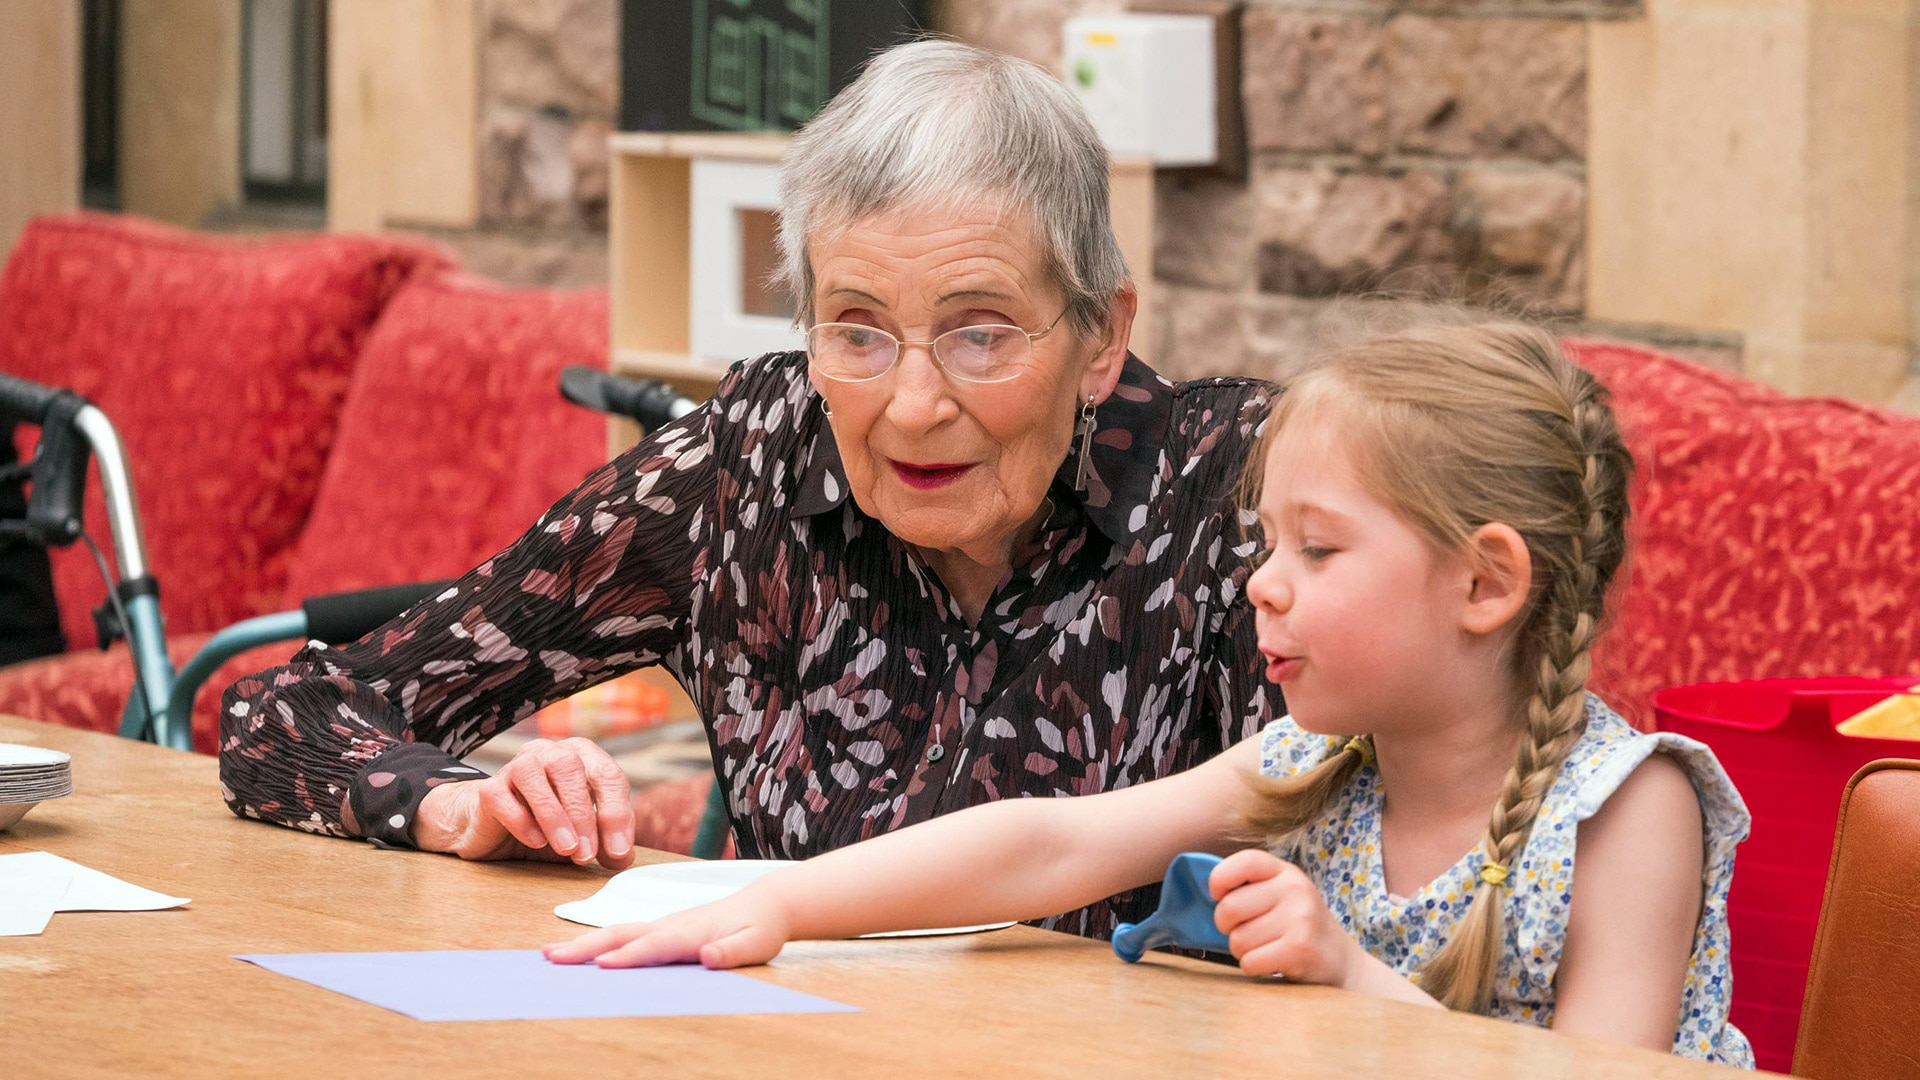 Old People's Home for 4 Year Olds review – a moving and uplifting experiment